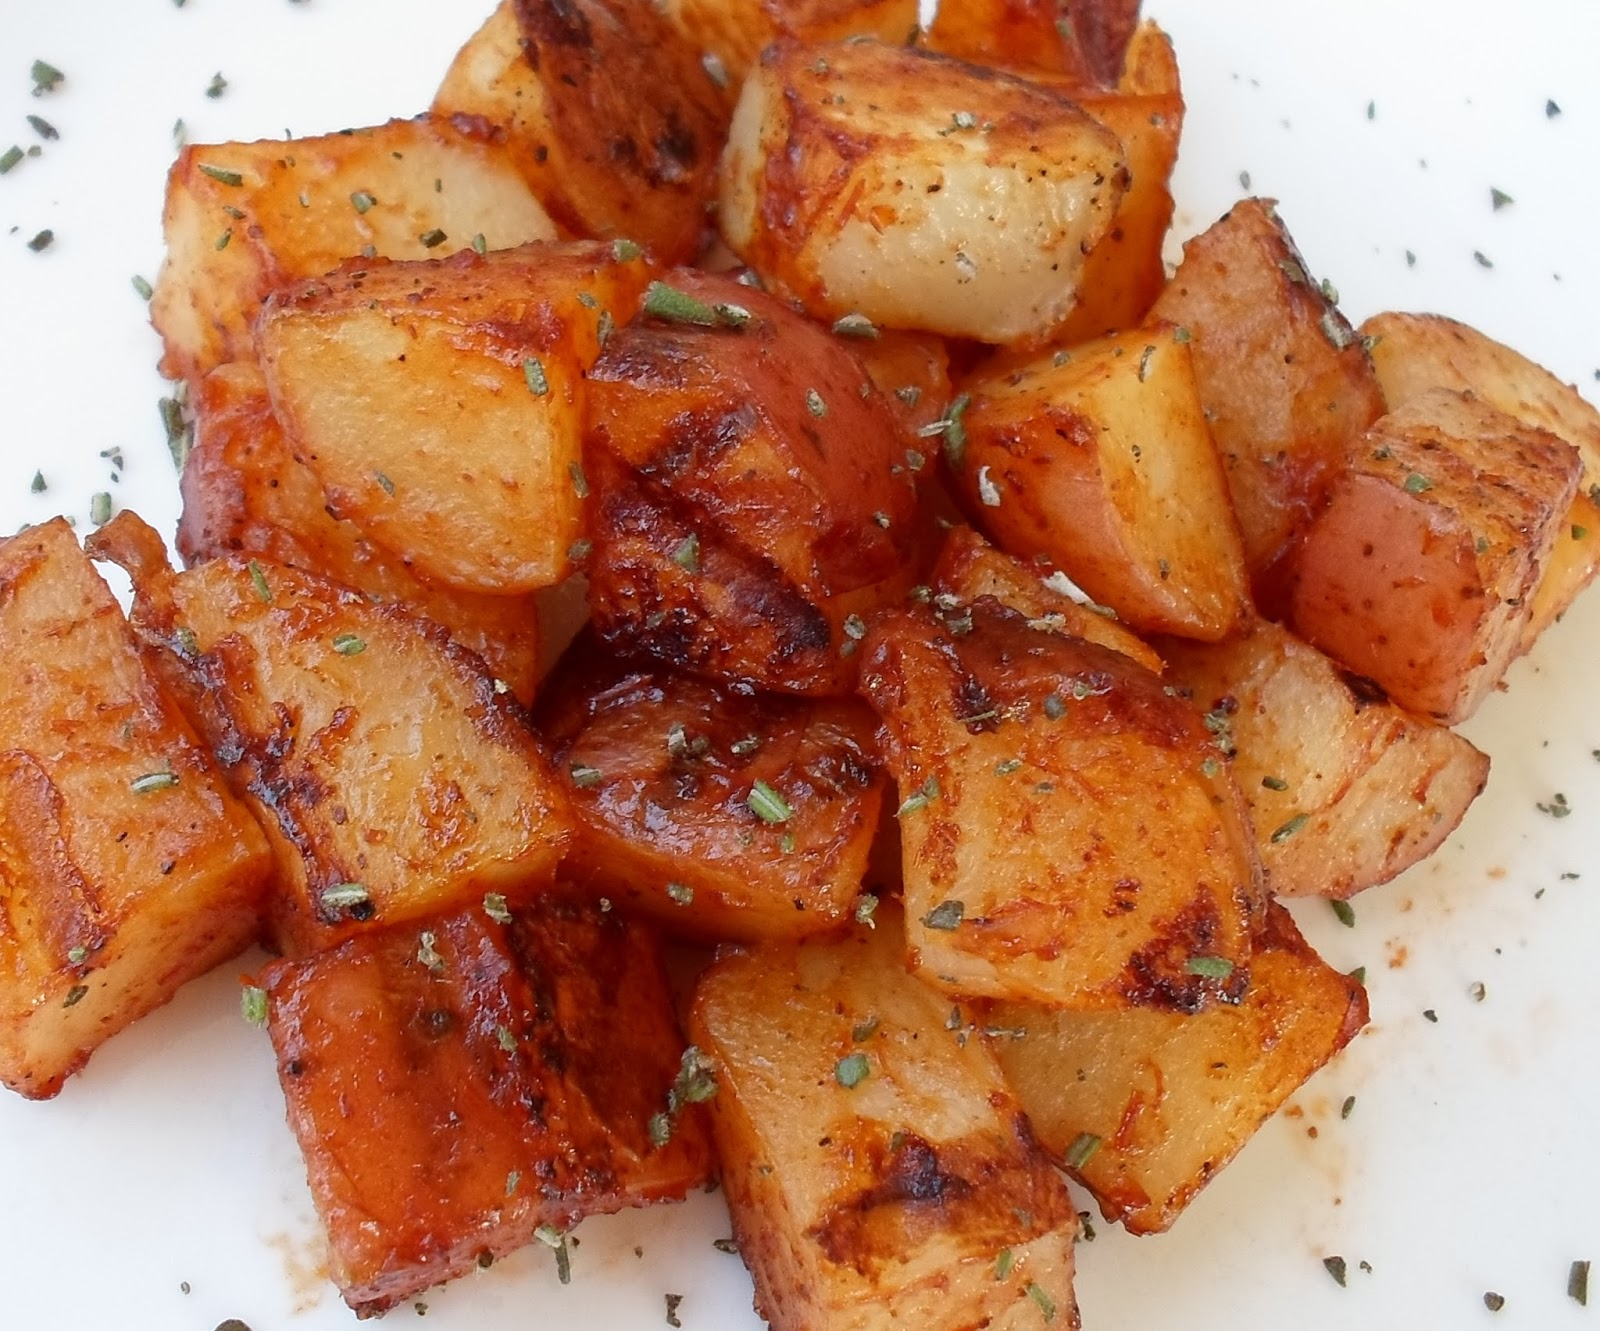 Happier Than A Pig In Mud: Grilled Potatoes with BBQ Sauce, Rosemary ...